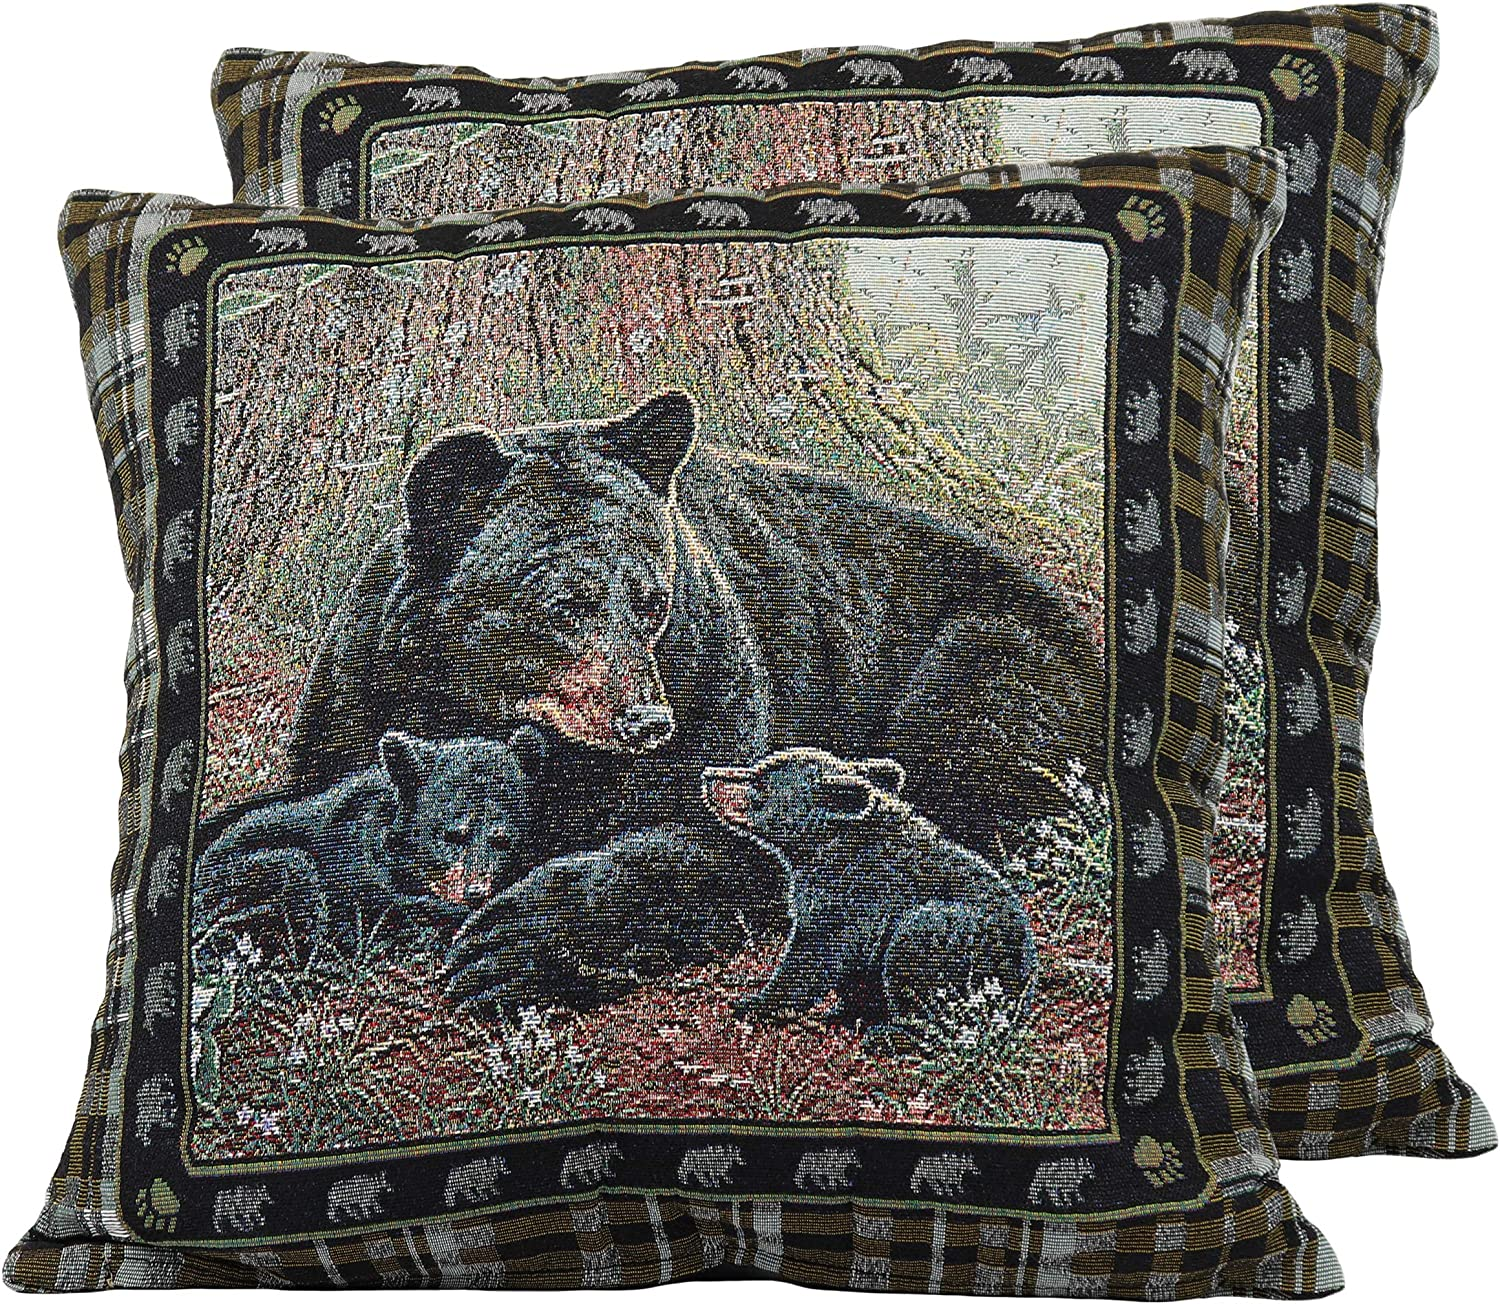 River s Edge Products Bear Tapestry Throw Pillows, Pair with Removable Covers, 18 by 18 Inch Square